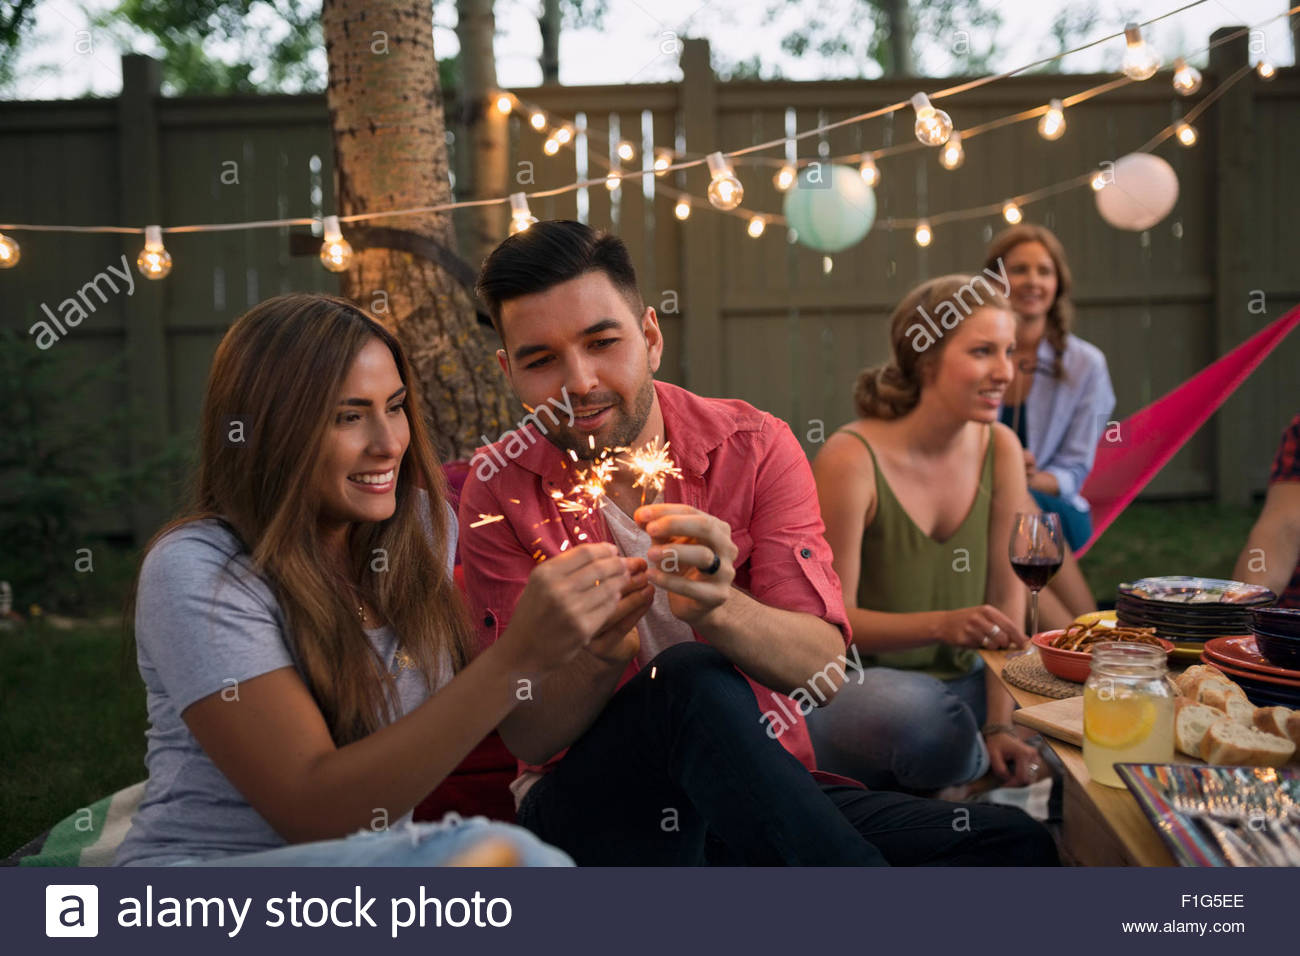 couple lighting sparklers at backyard dinner party stock photo